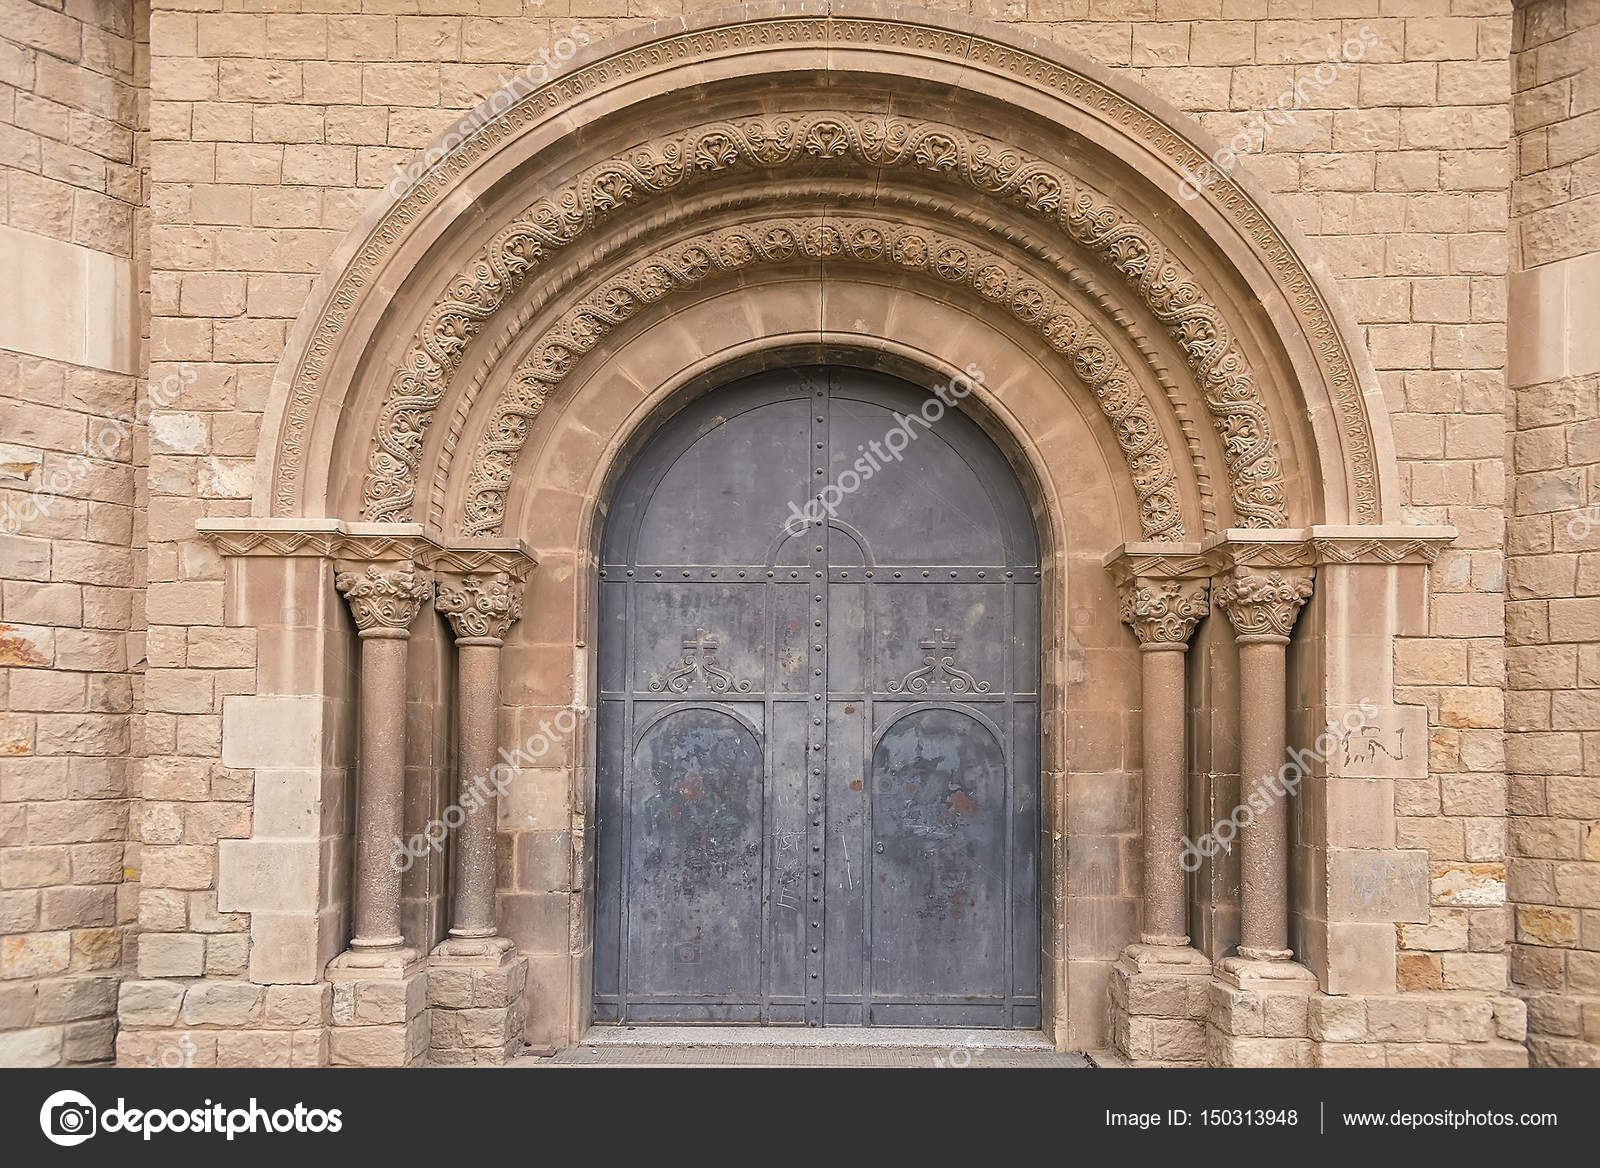 Old monastery door with arches in Barcelona u2014 Stock Photo & Old monastery door with arches in Barcelona u2014 Stock Photo ...